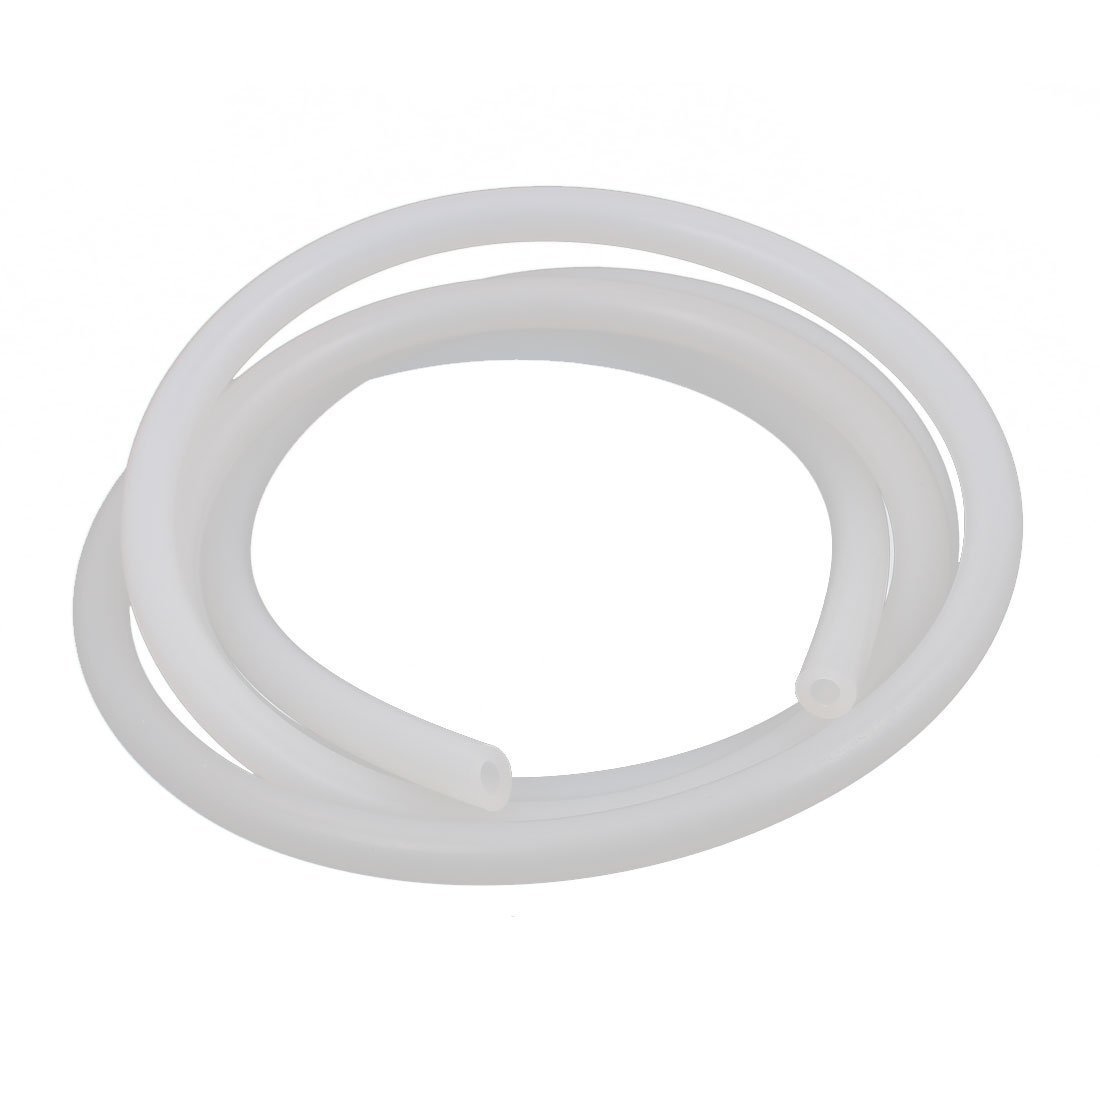 sourcingmap Silicone Tube 4mm ID X 7mm OD 3.3 Flexible Silicone Rubber Tubing Water Air Hose Pipe Translucent for Pump Transfer